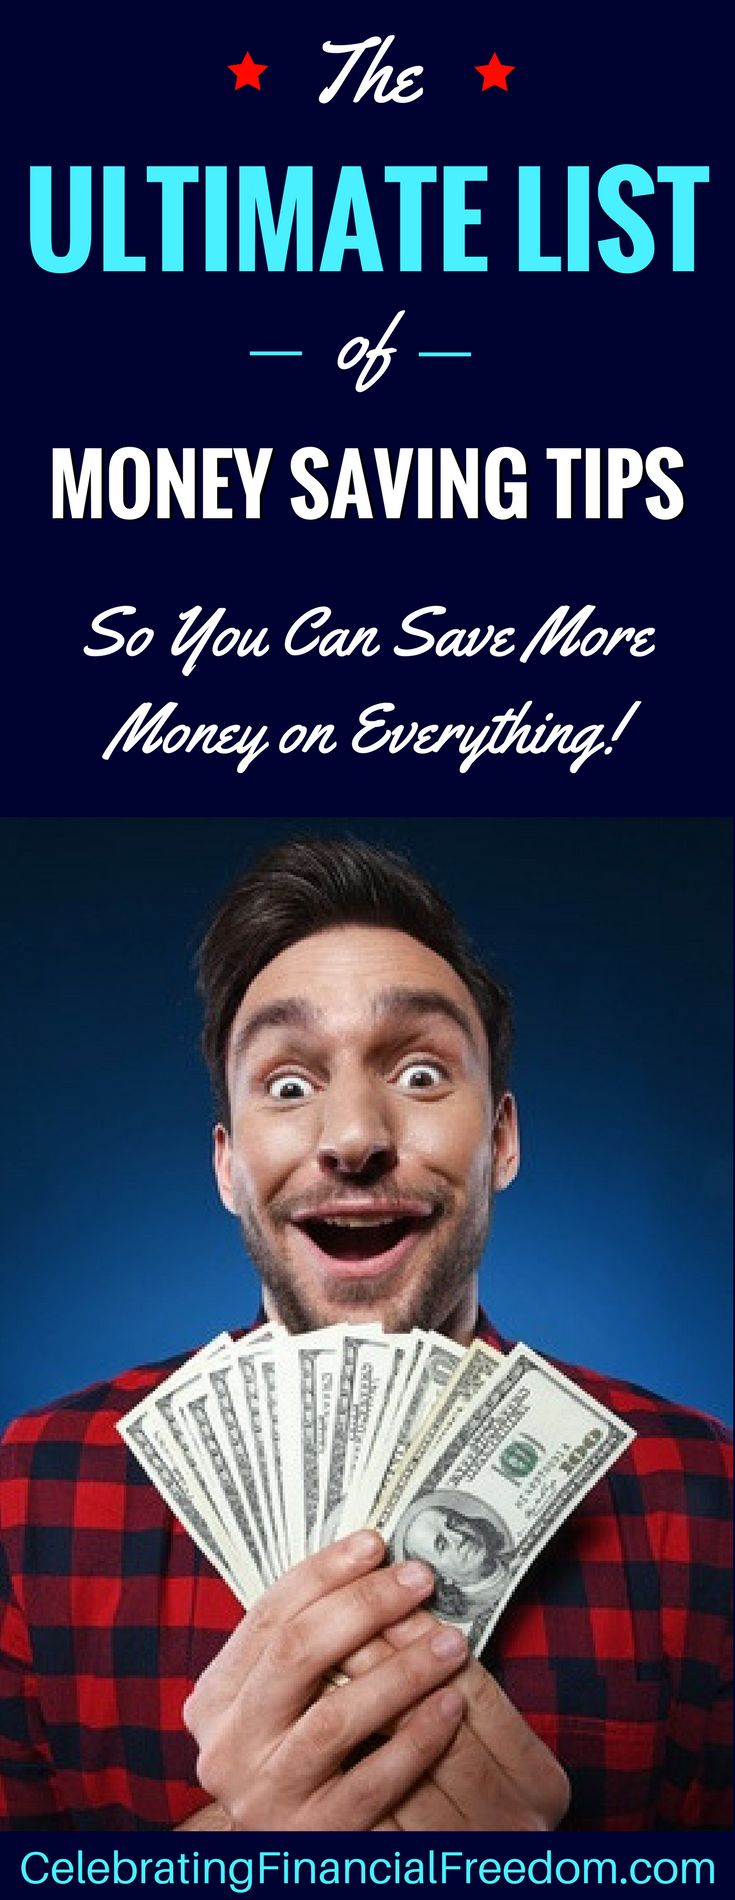 59 of my best money saving tips to help you spend less than you make, put more money in your pocket, and save money for the future!  The ultimate list for saving more money on everything!  http://www.cfinancialfreedom.com/list-money-saving-tips-save-more-money  #savemoney #tips #list #money #finances